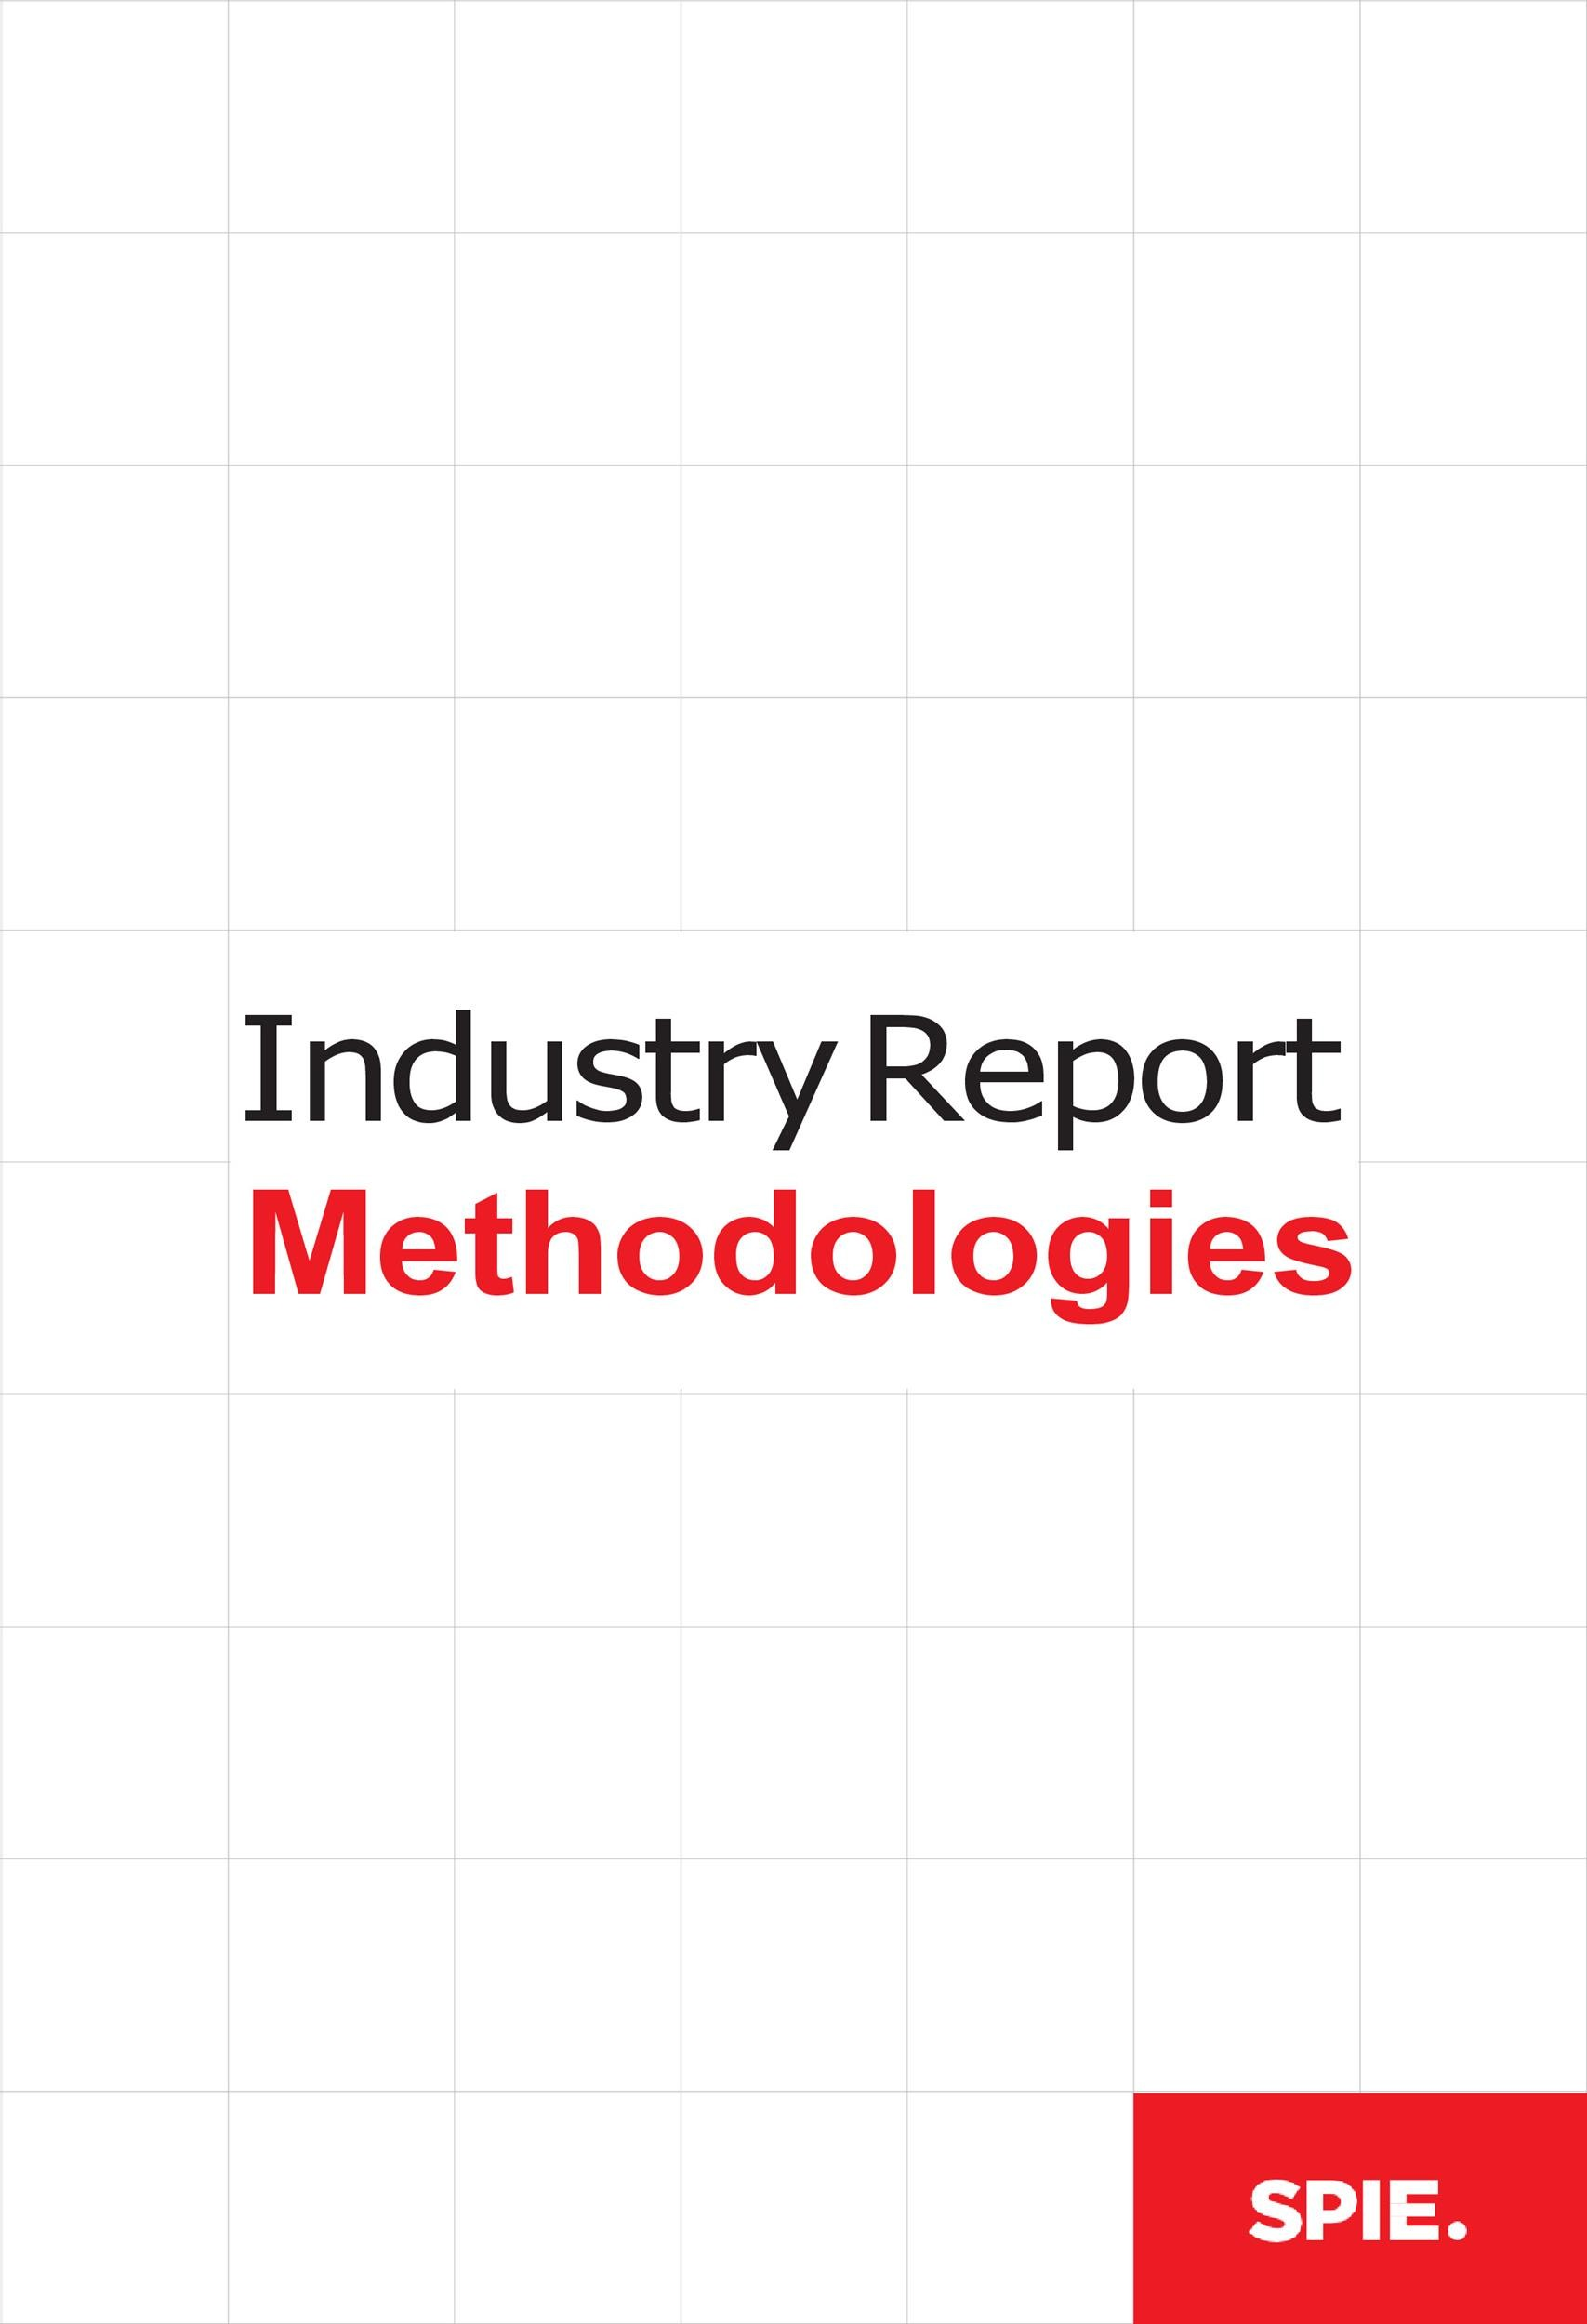 Free industry analysis example 28